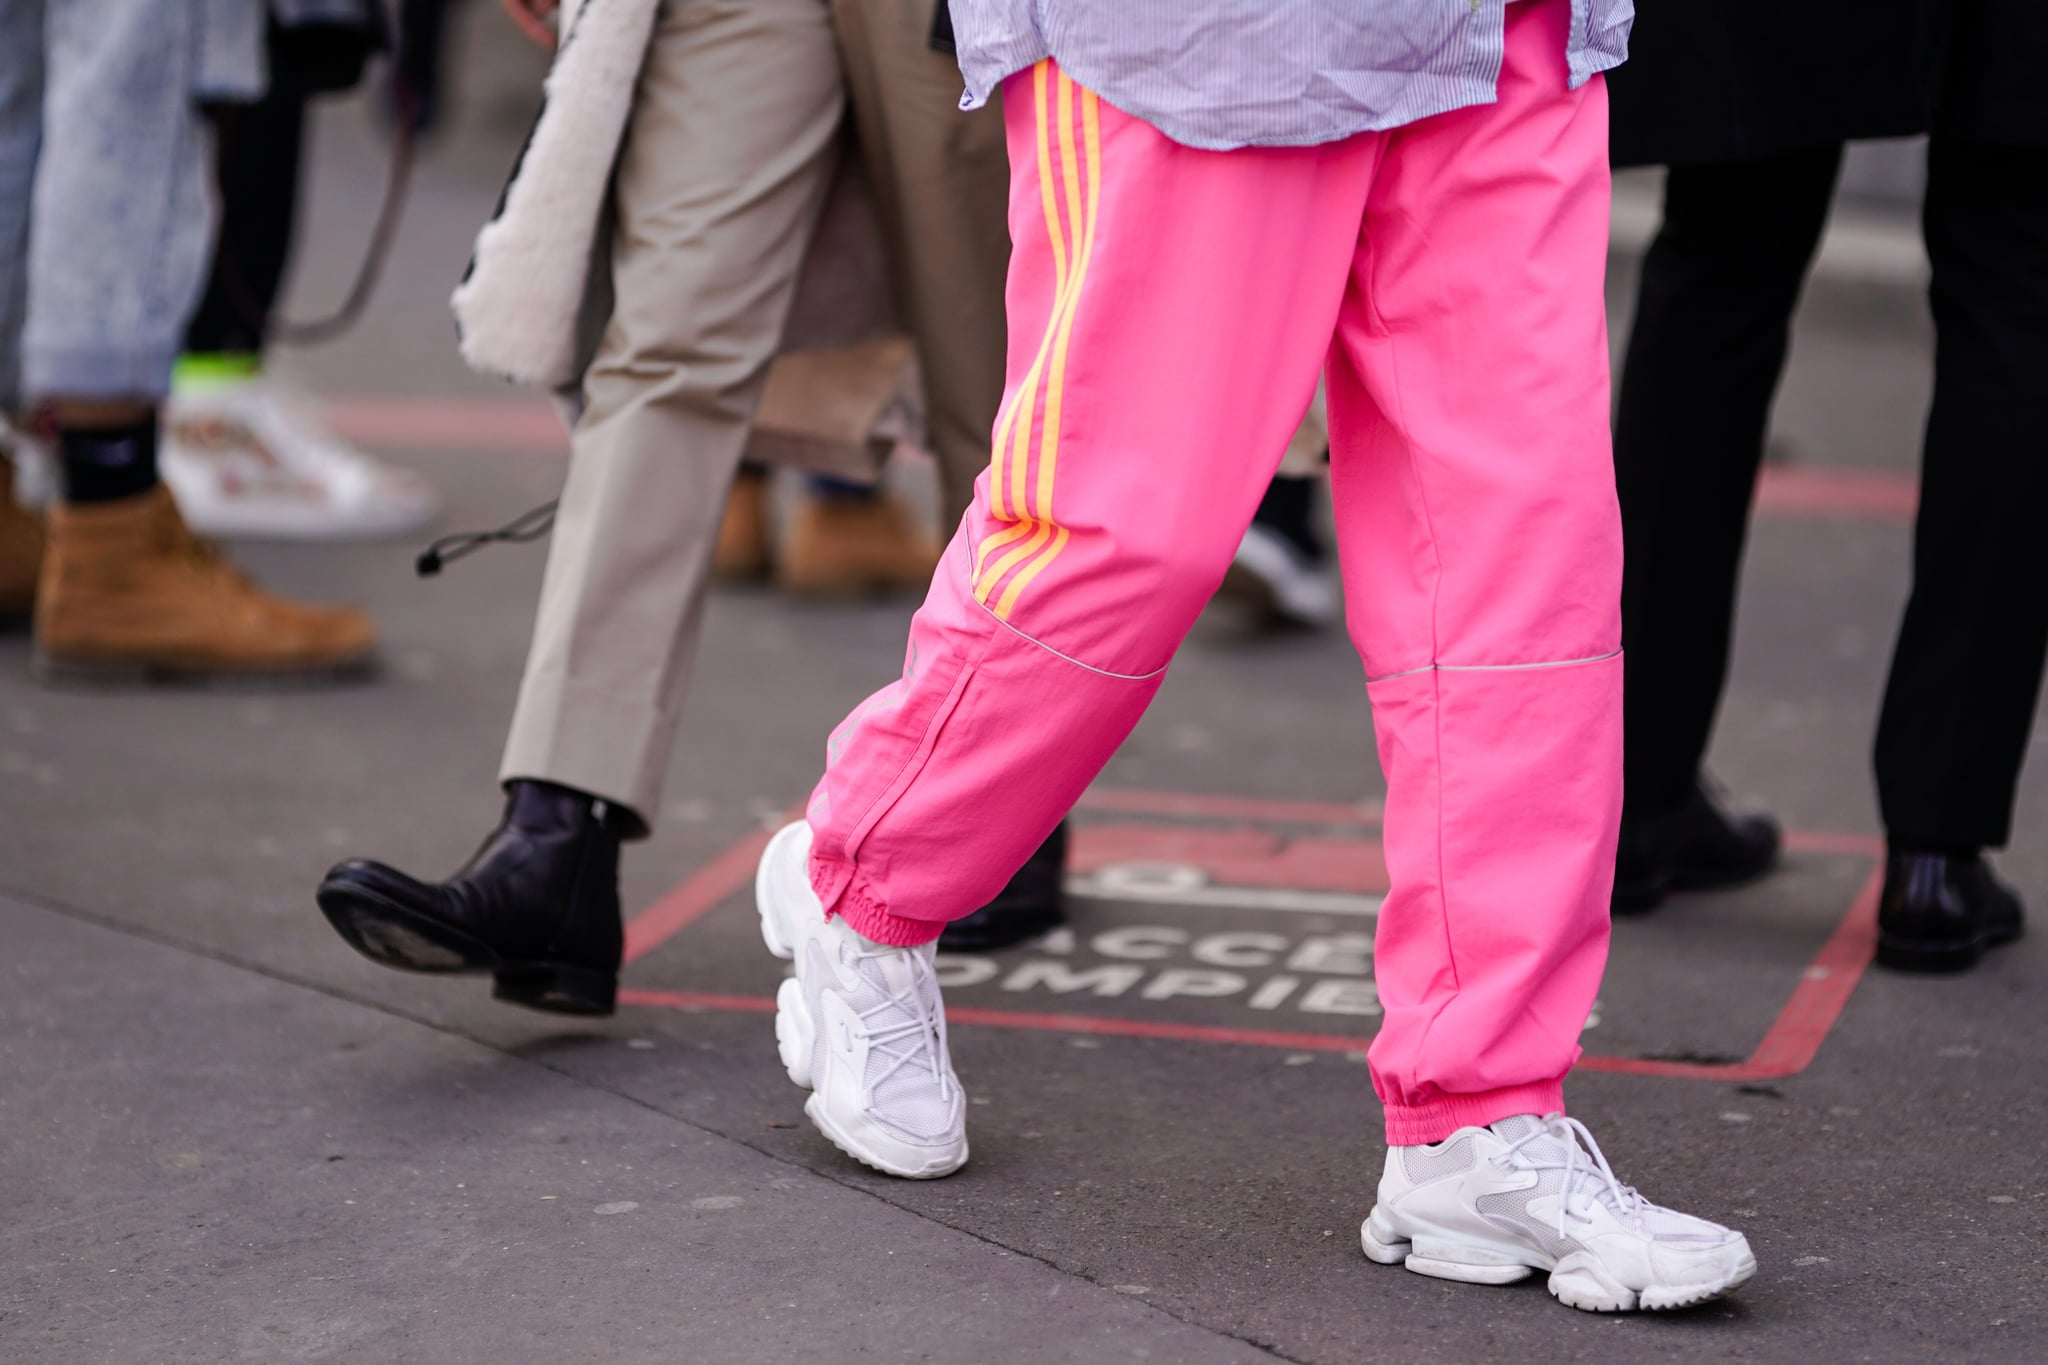 PARIS, FRANCE - JANUARY 18: A guest wears pink sports pants with yellow stripes, white sneakers, during Paris Fashion Week - Menswear F/W 2019-2020, on January 18, 2019 in Paris, France. (Photo by Edward Berthelot/Getty Images)